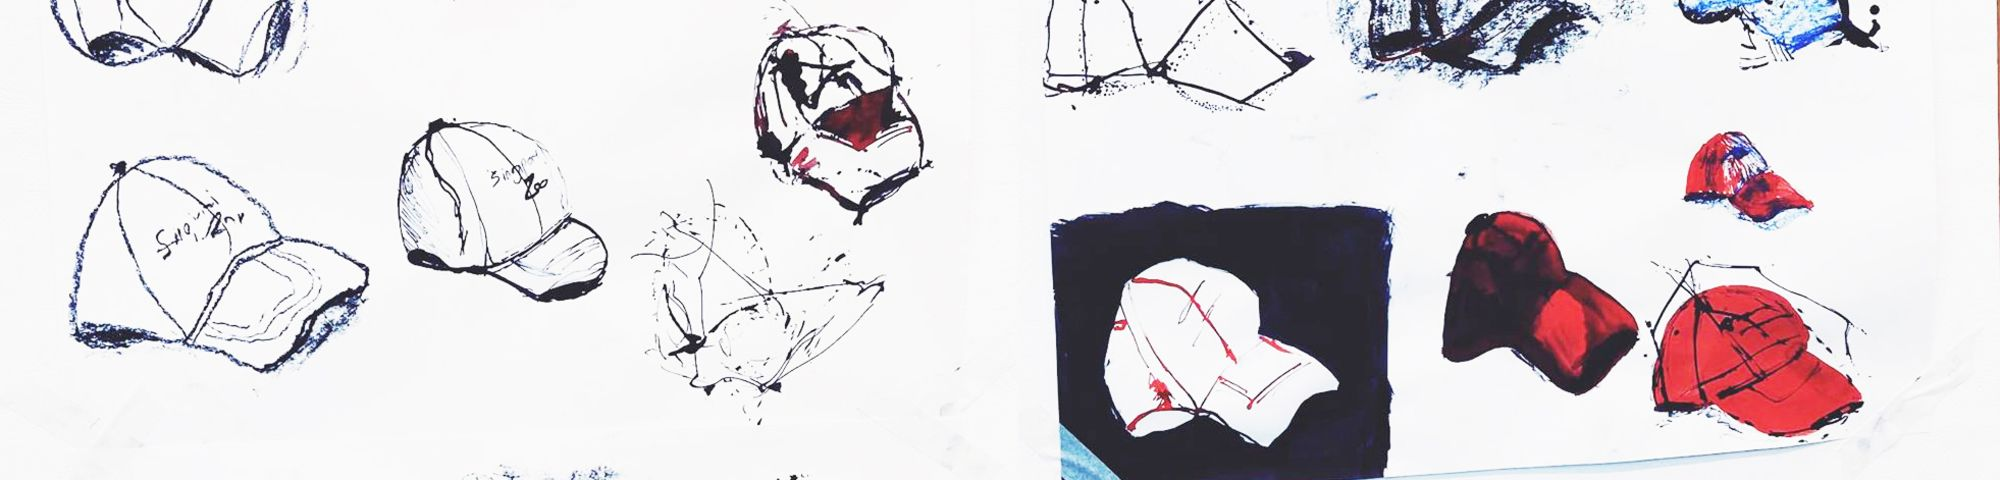 Illustrations of a baseball cap in different drawing styles attempted.